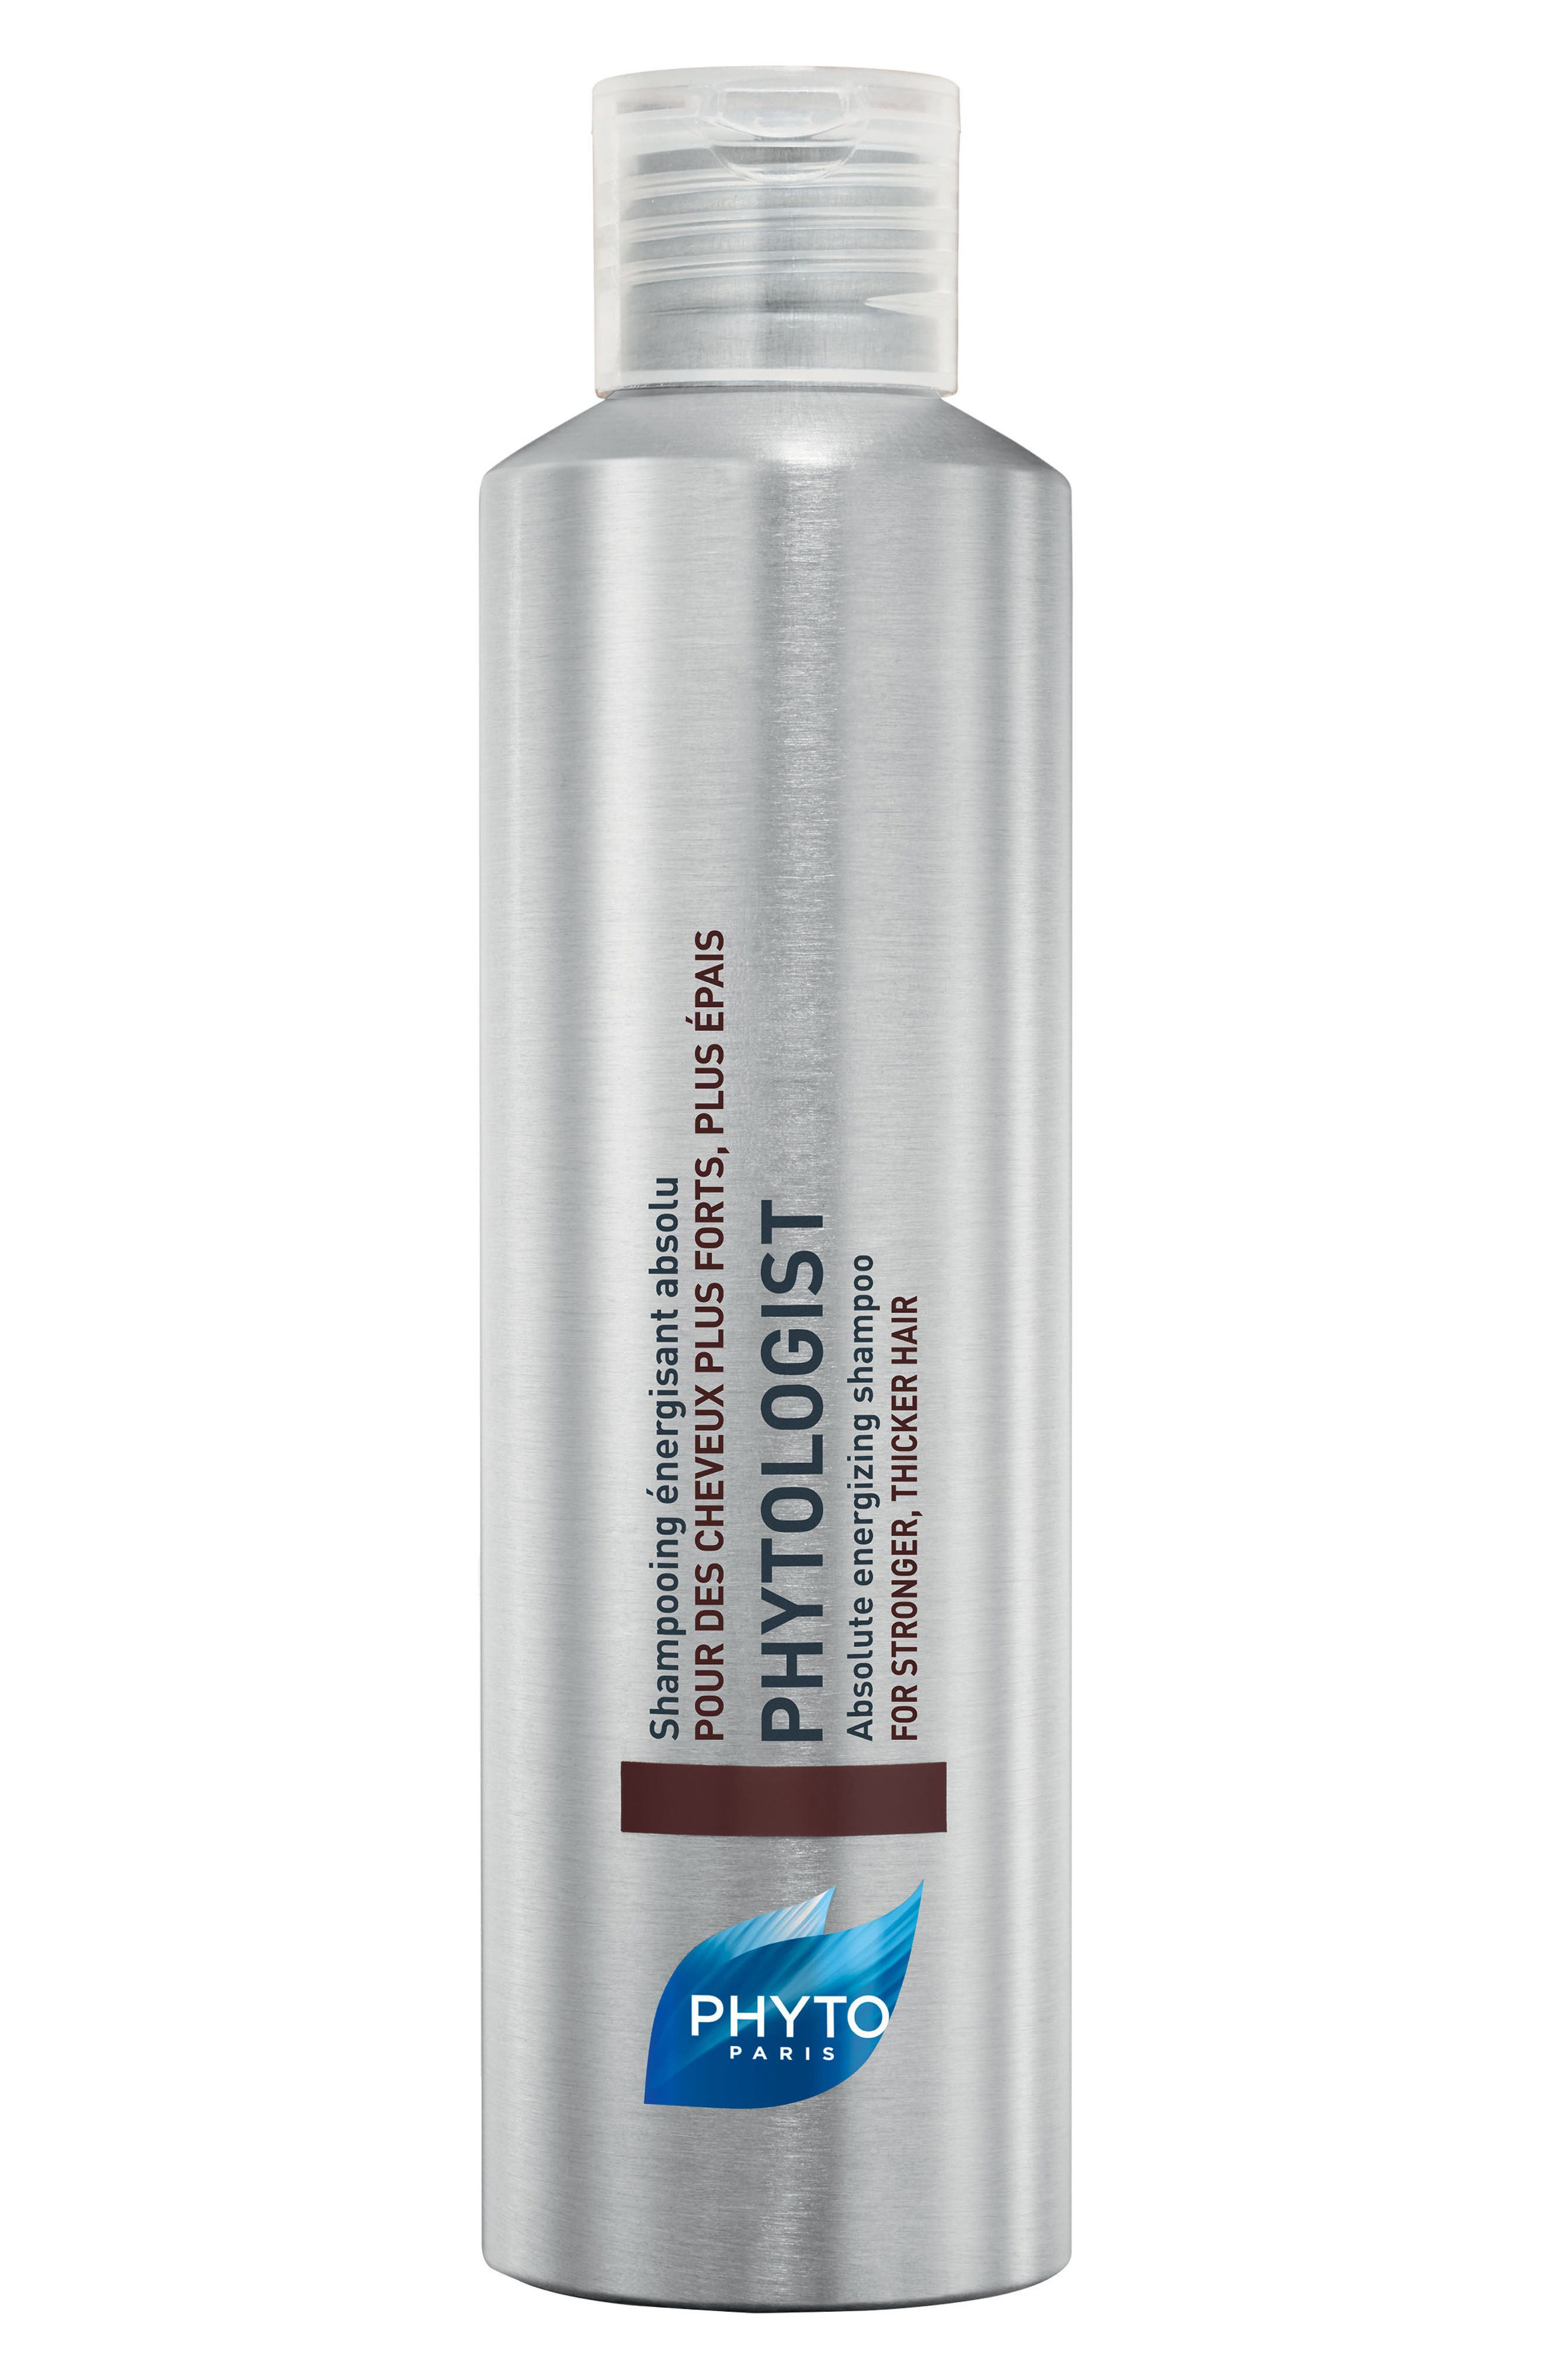 Phytologist Absolute Energizing Shampoo,                         Main,                         color, No Color